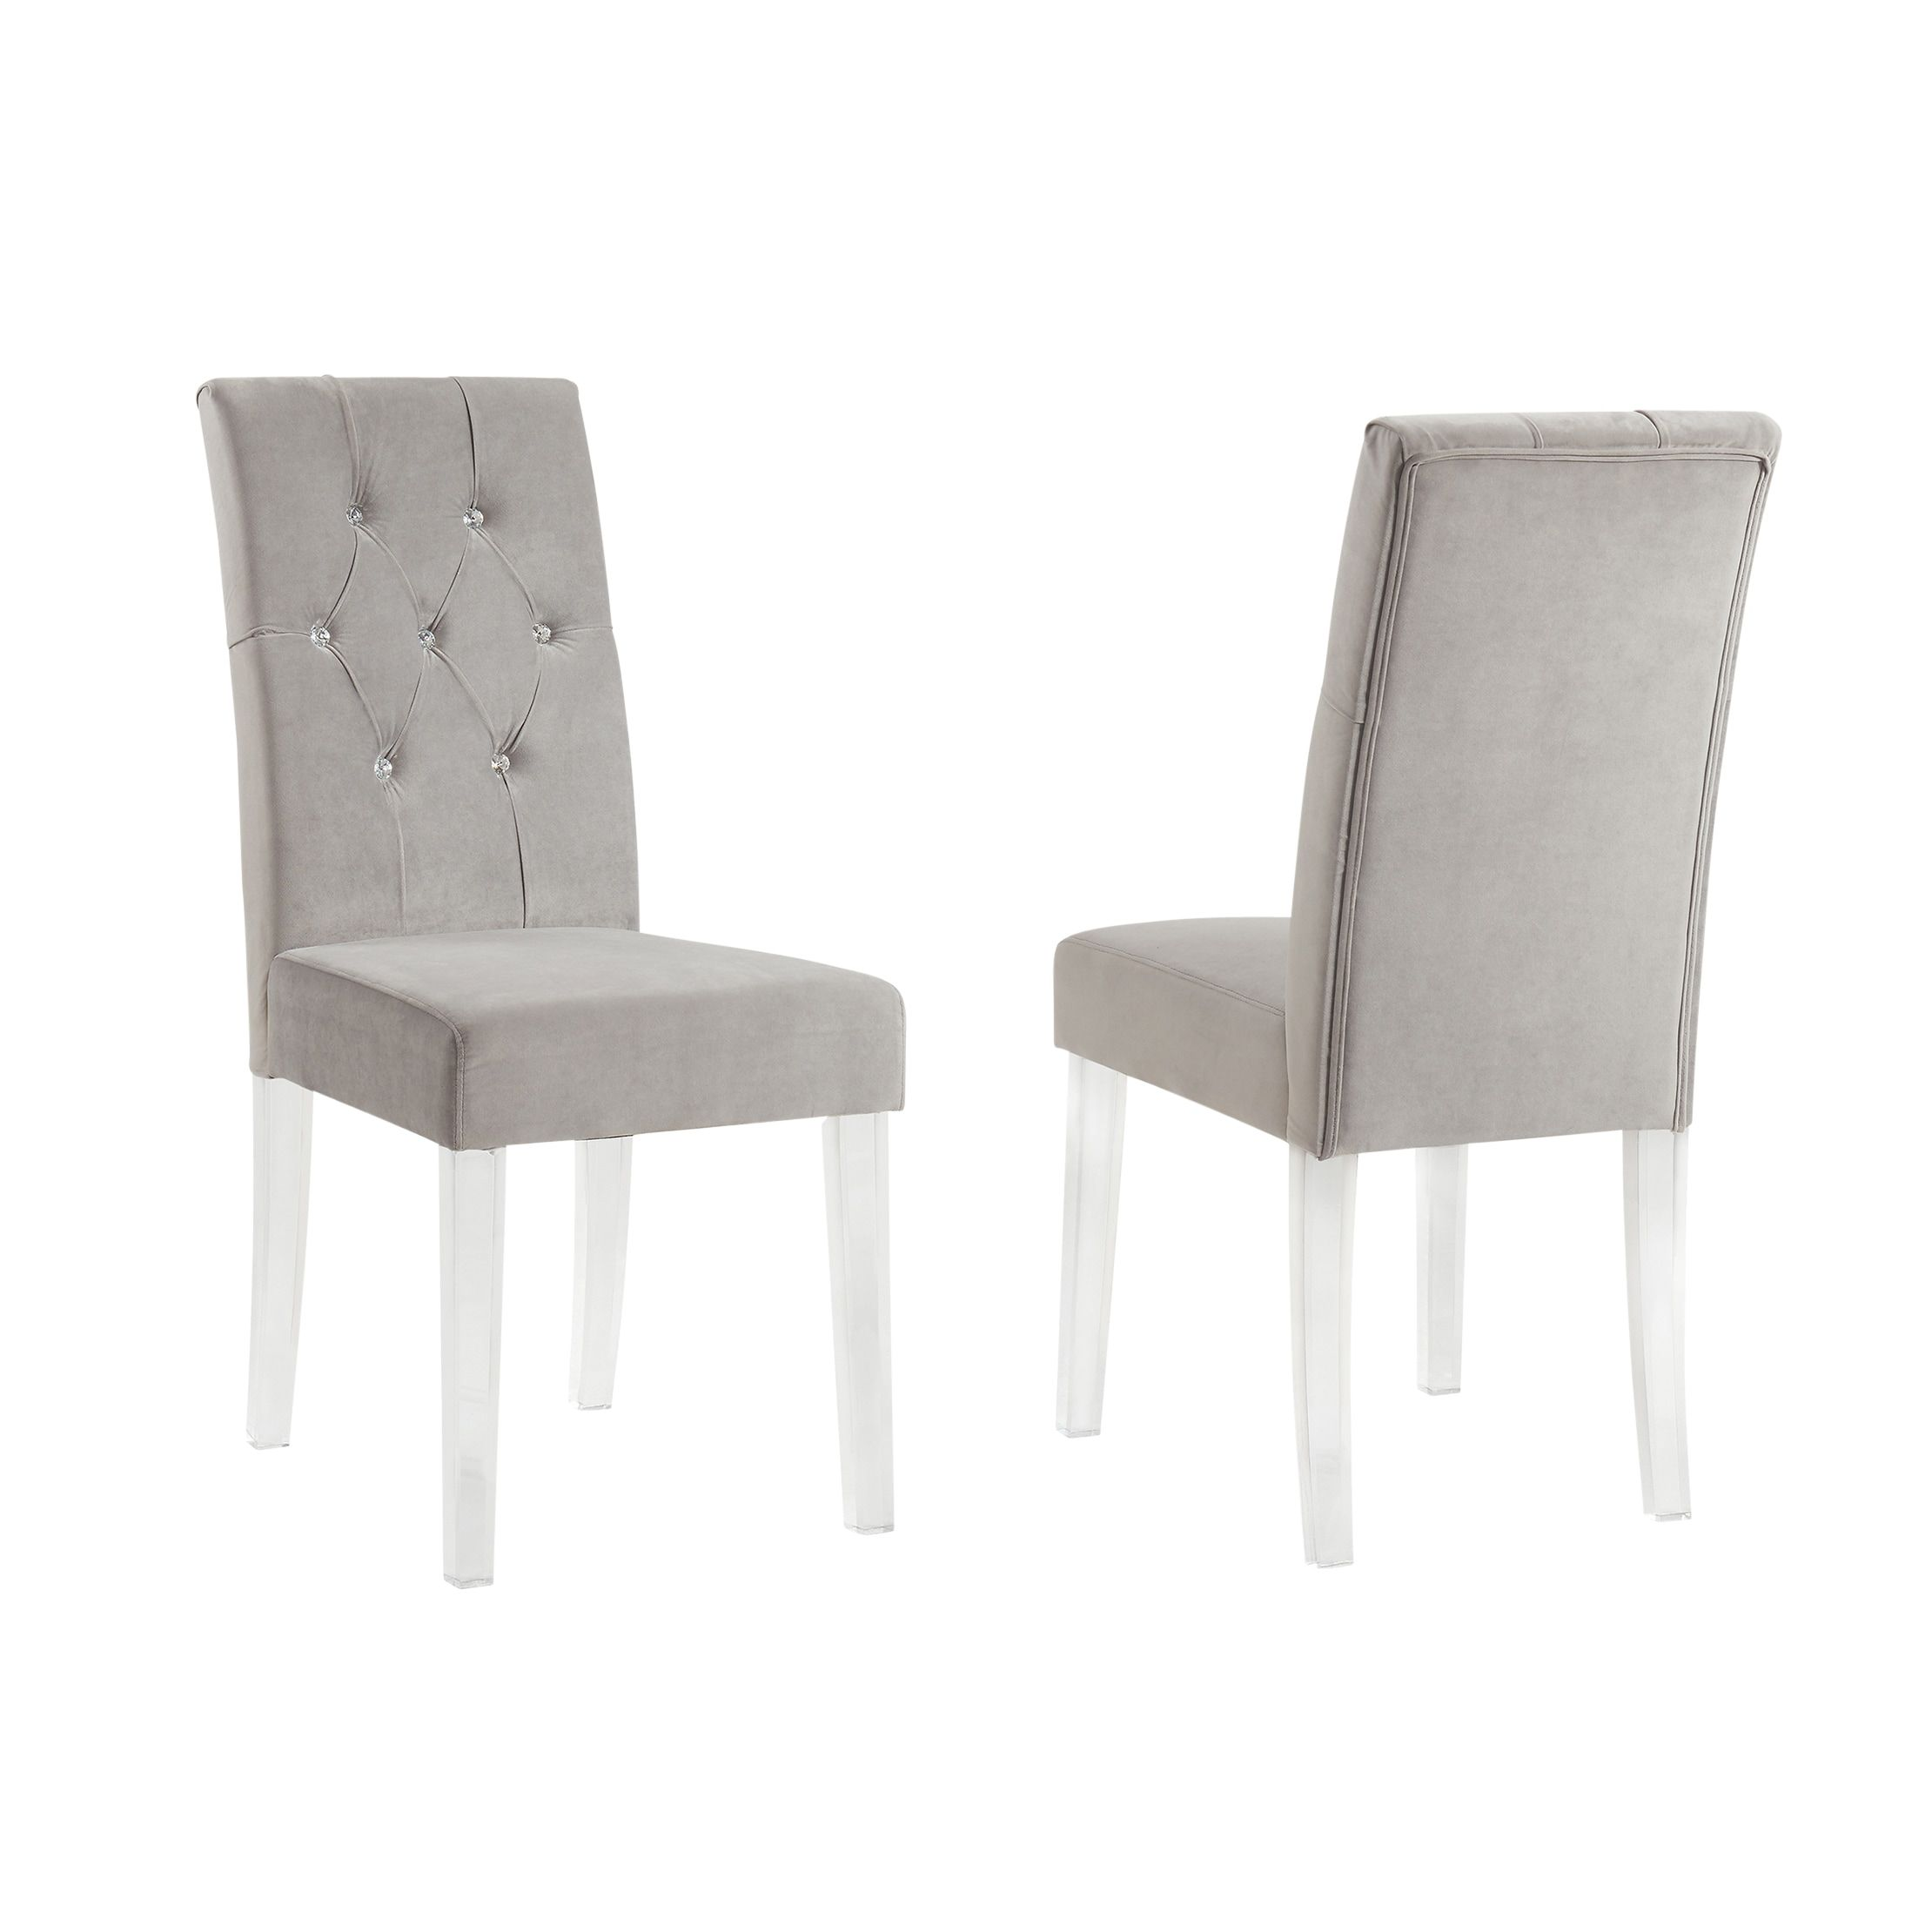 Cavalli Crystal Studded Velvet Dining Chairs With Acrylic